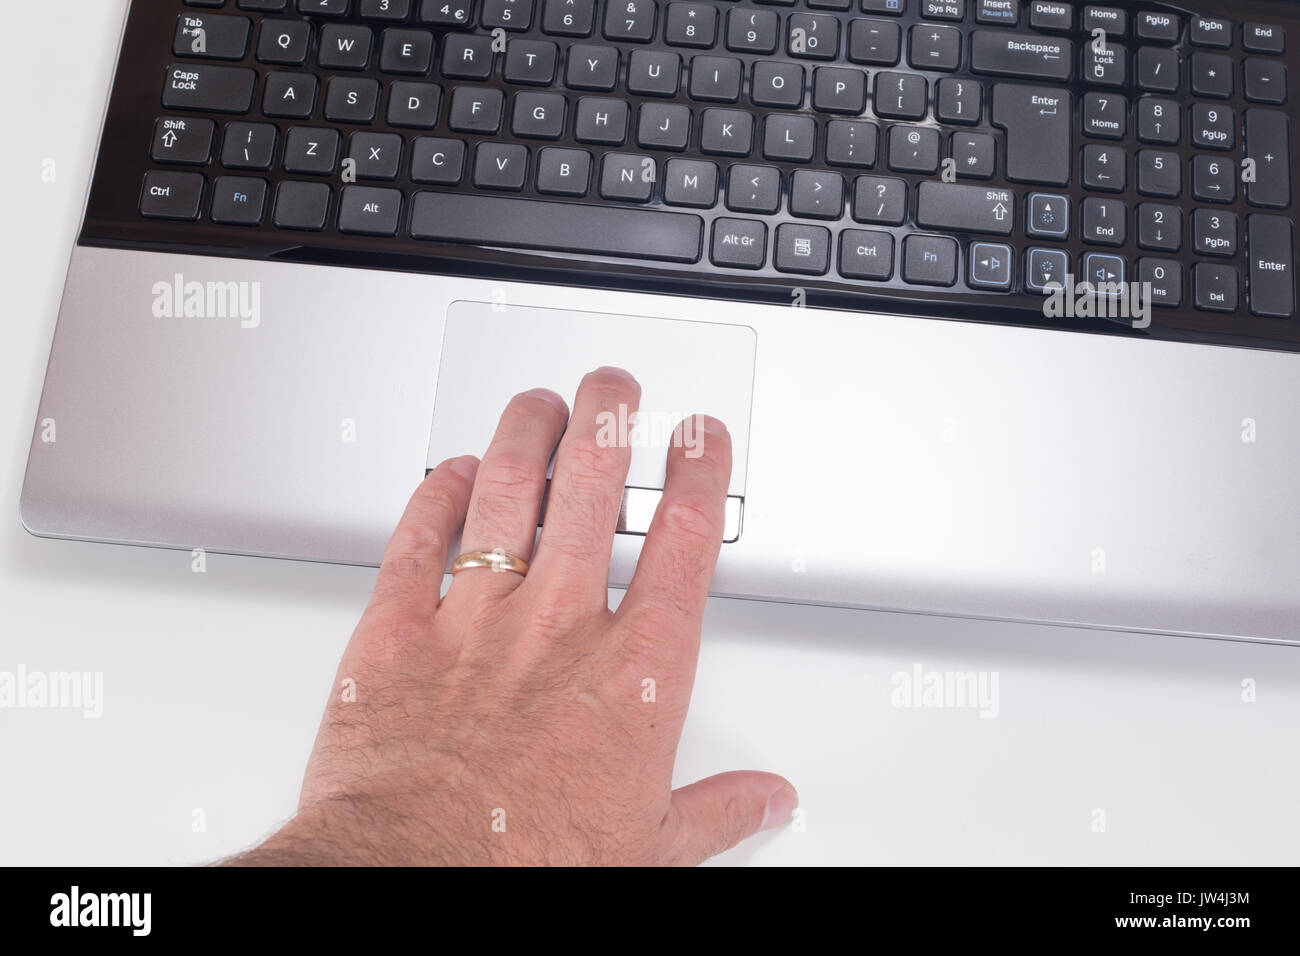 Close up of a mans hand with wedding ring using a tracking pad on a computer laptop with white background and copy space. - Stock Image